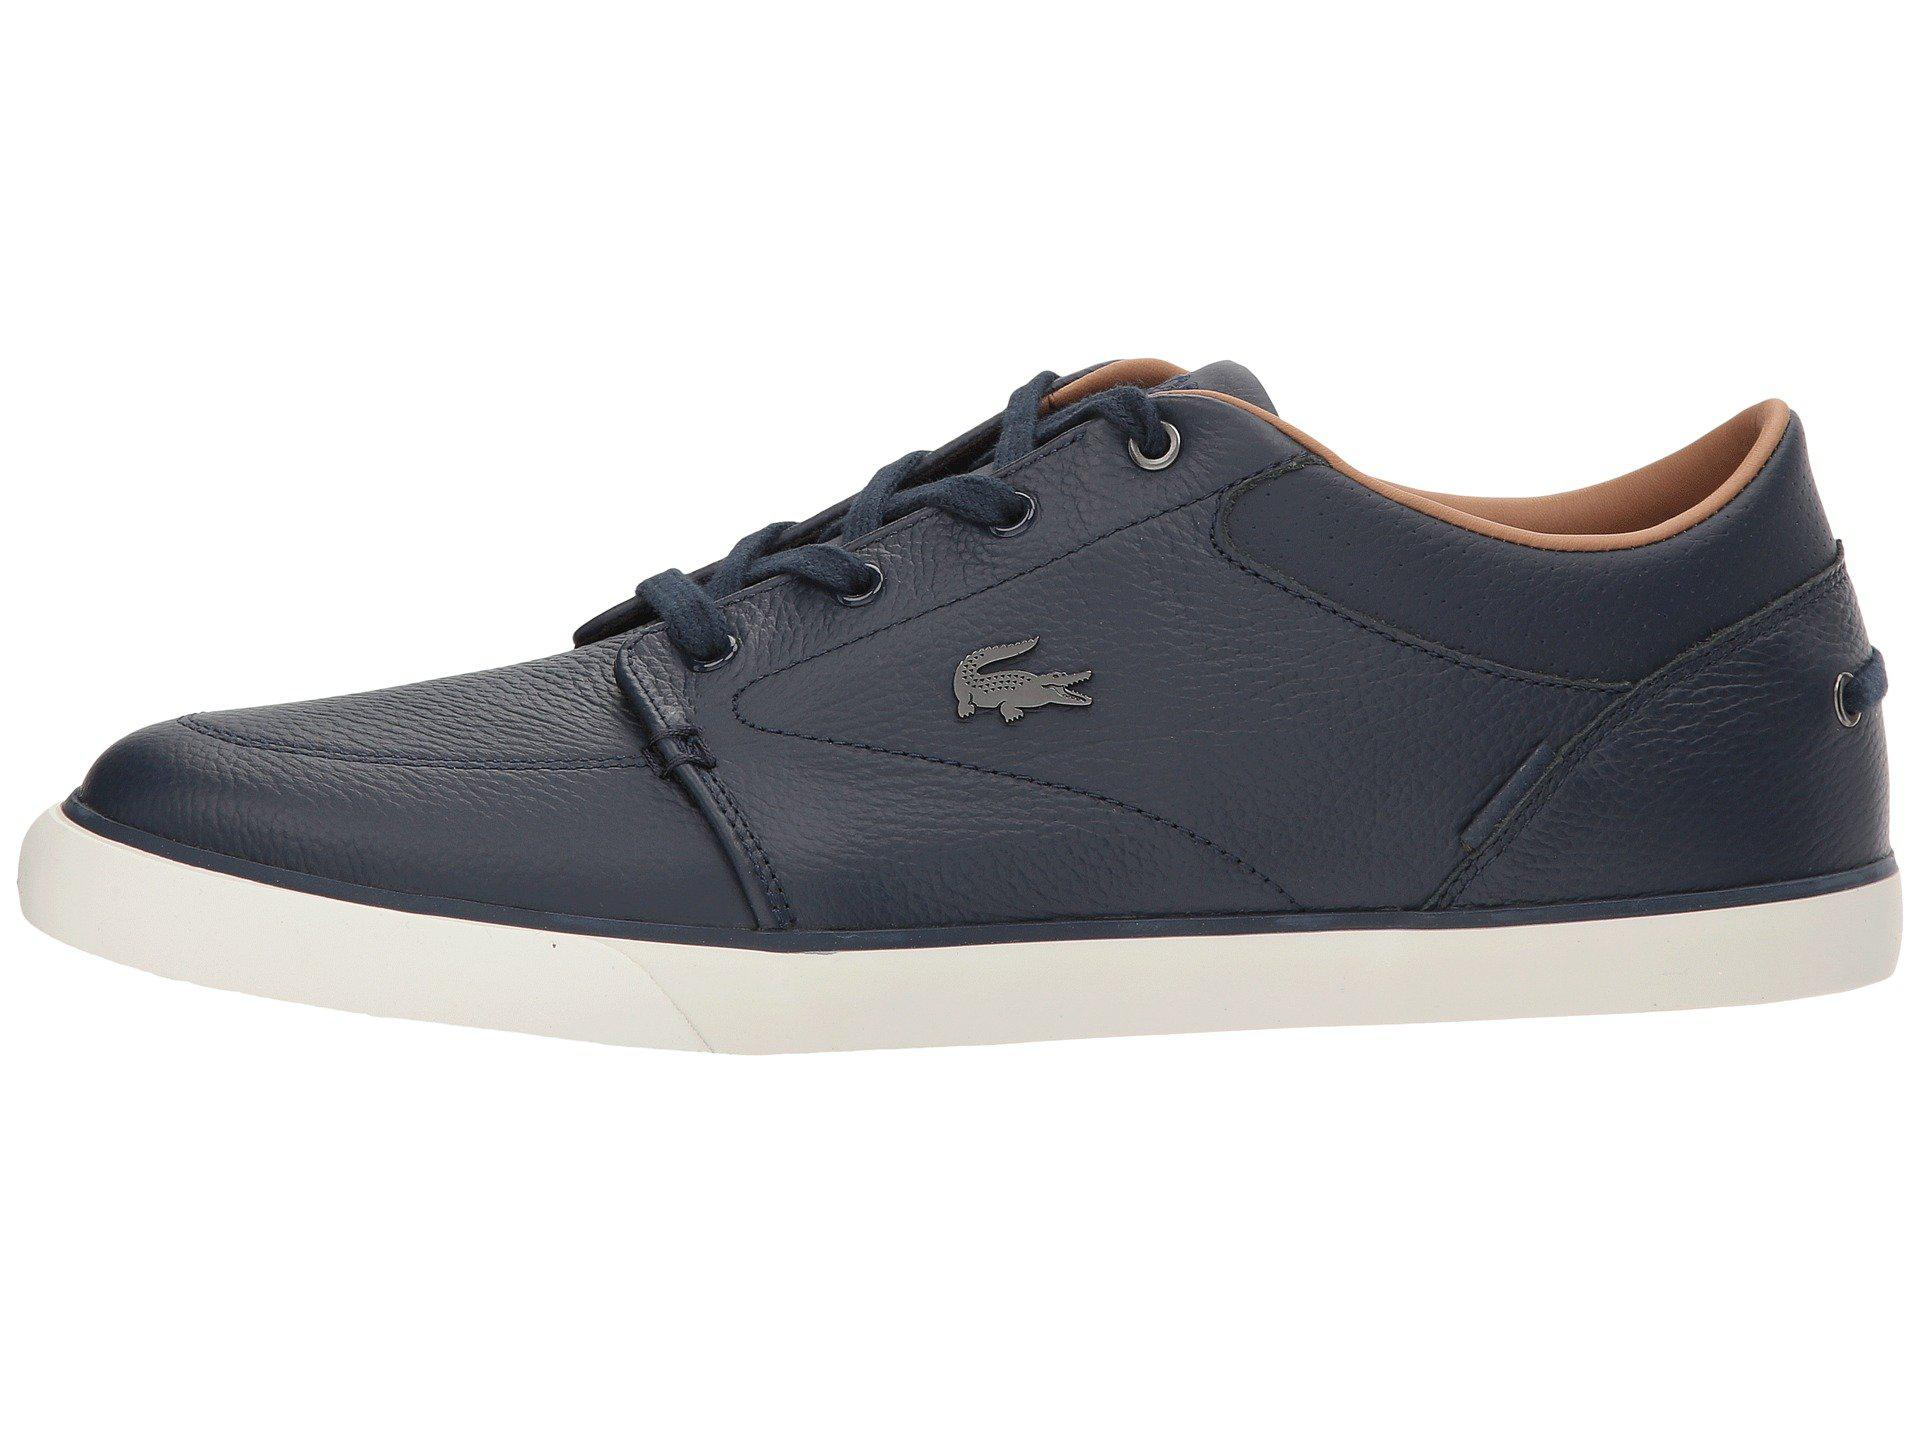 Lacoste Leather Bayliss 118 1 (navy/off